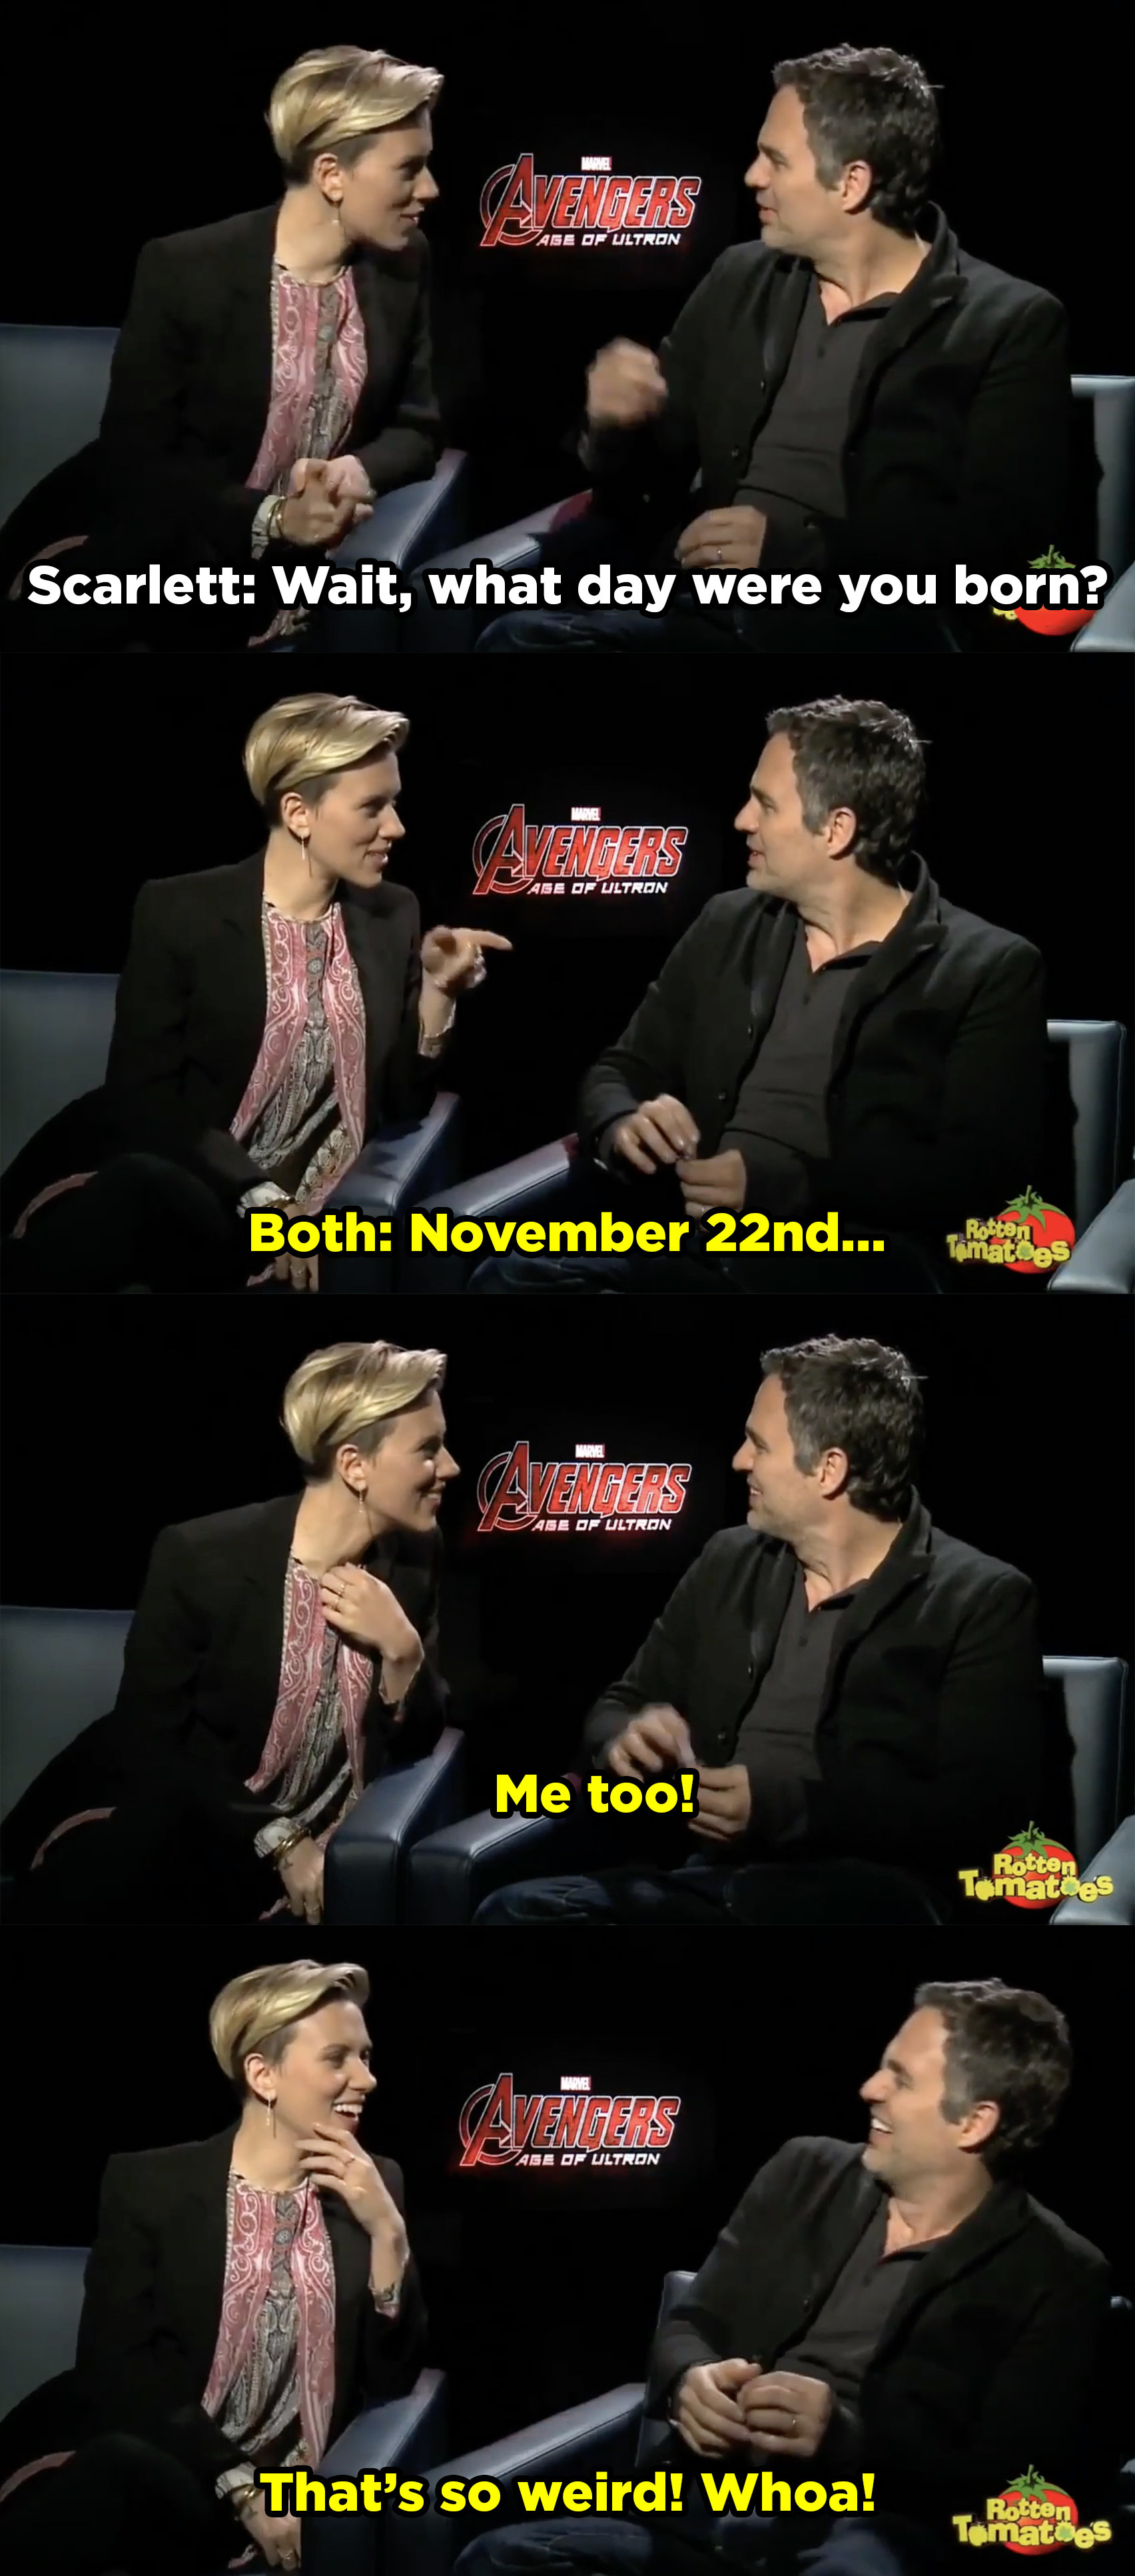 """Scarlett and Mark sitting in an interview and Scarlett asks, """"Wait, what day were you born?"""" Then at the same time they both day, """"November 22nd. Me too! That's so weird! Whoa!"""""""